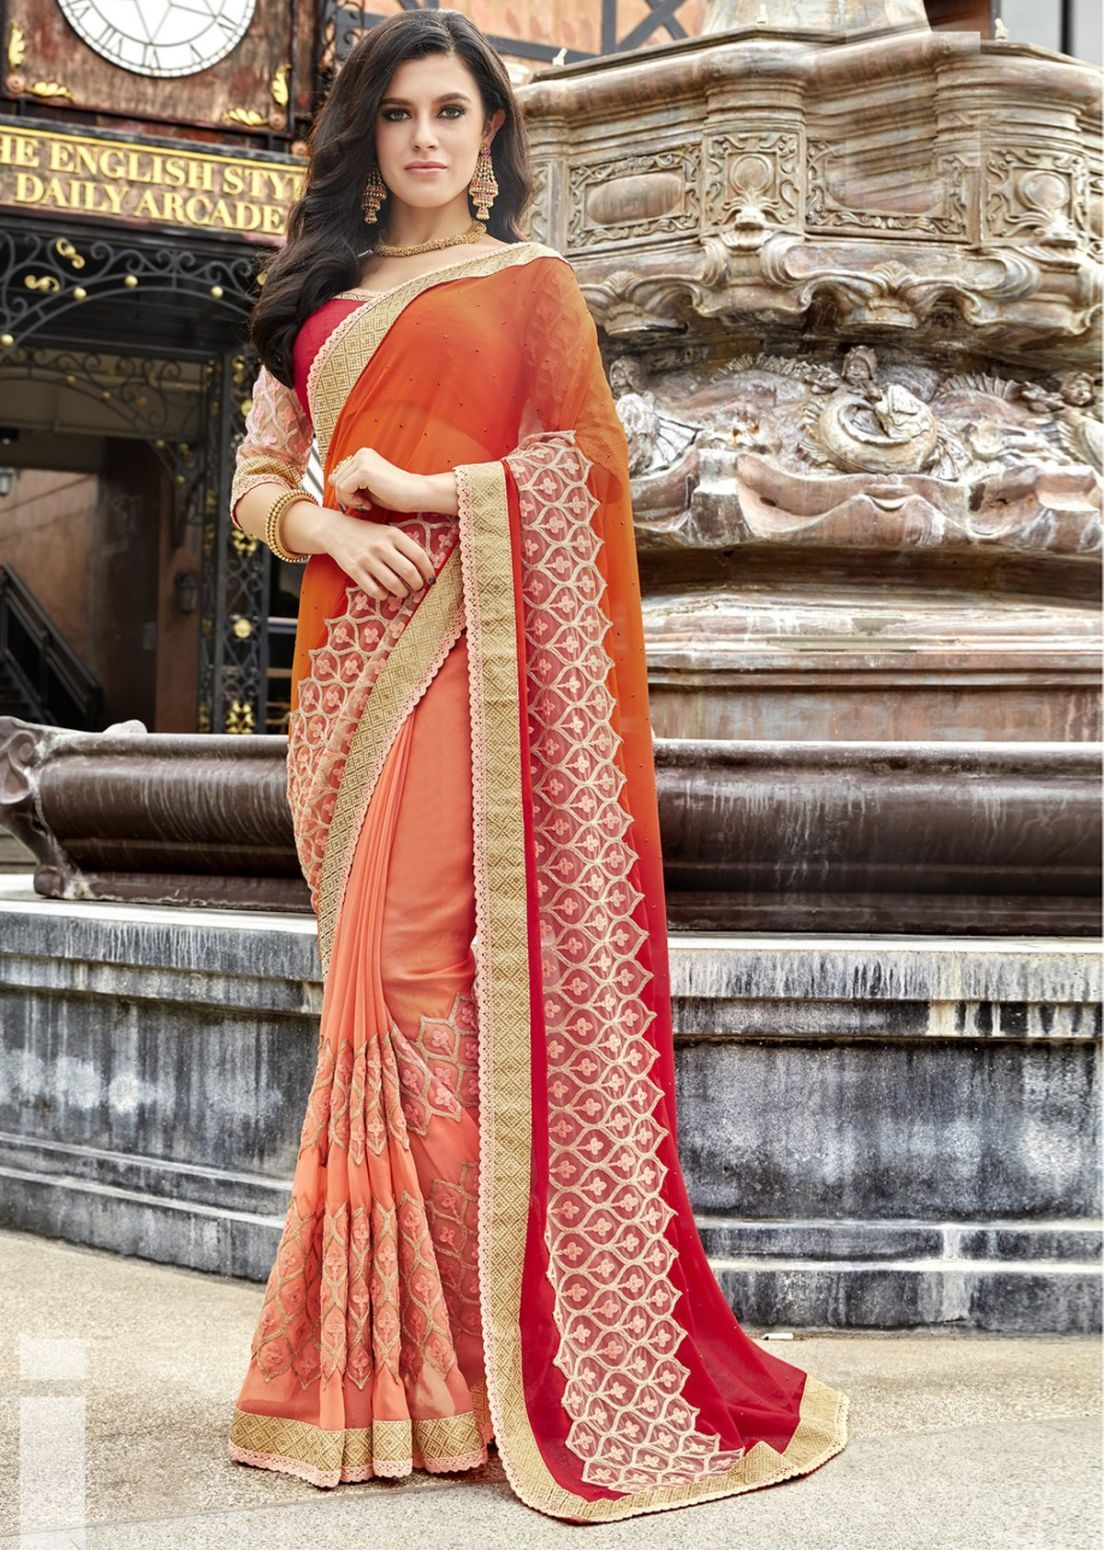 1a1cb80920 Buy Orange Color Faux Georgette Wedding Wear Sarees Online at Low prices in  India on Winsant FREE SHIPPING #saree #designersaree #chiffon  #onlineshopping ...